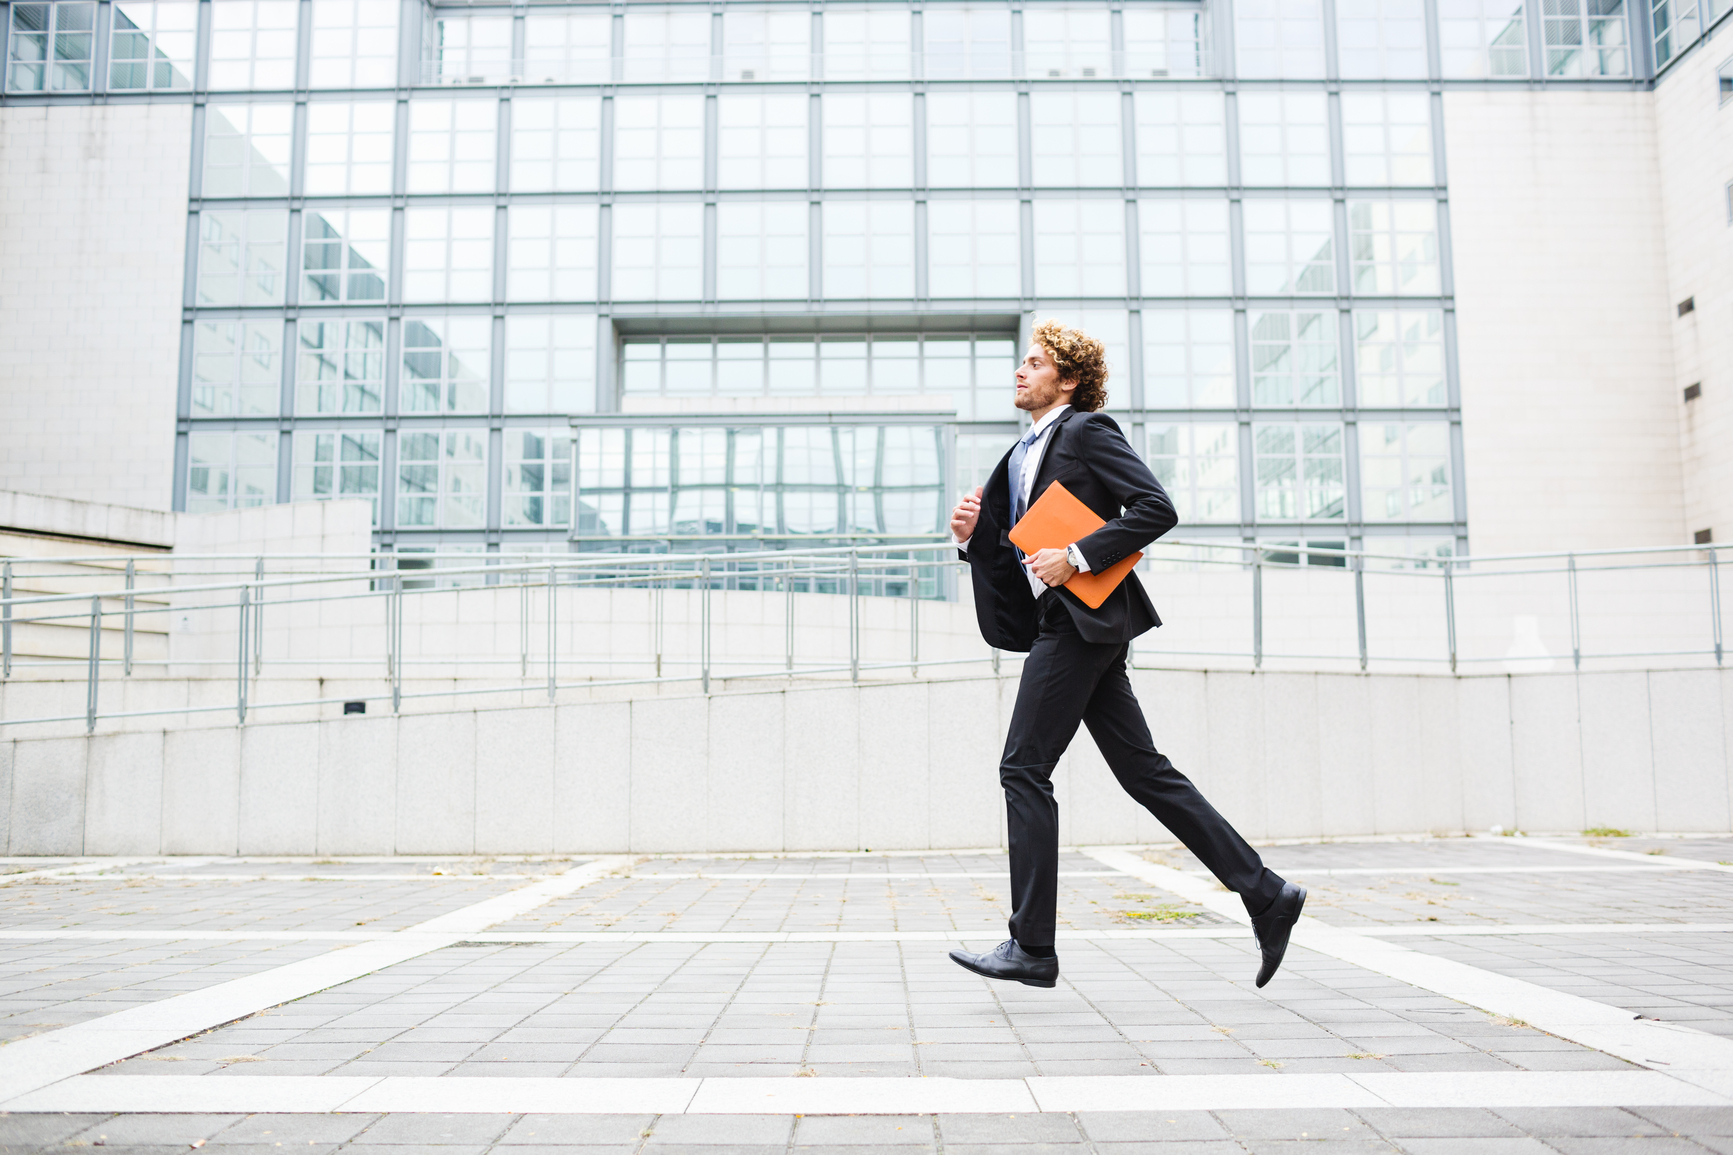 man running to file taxes